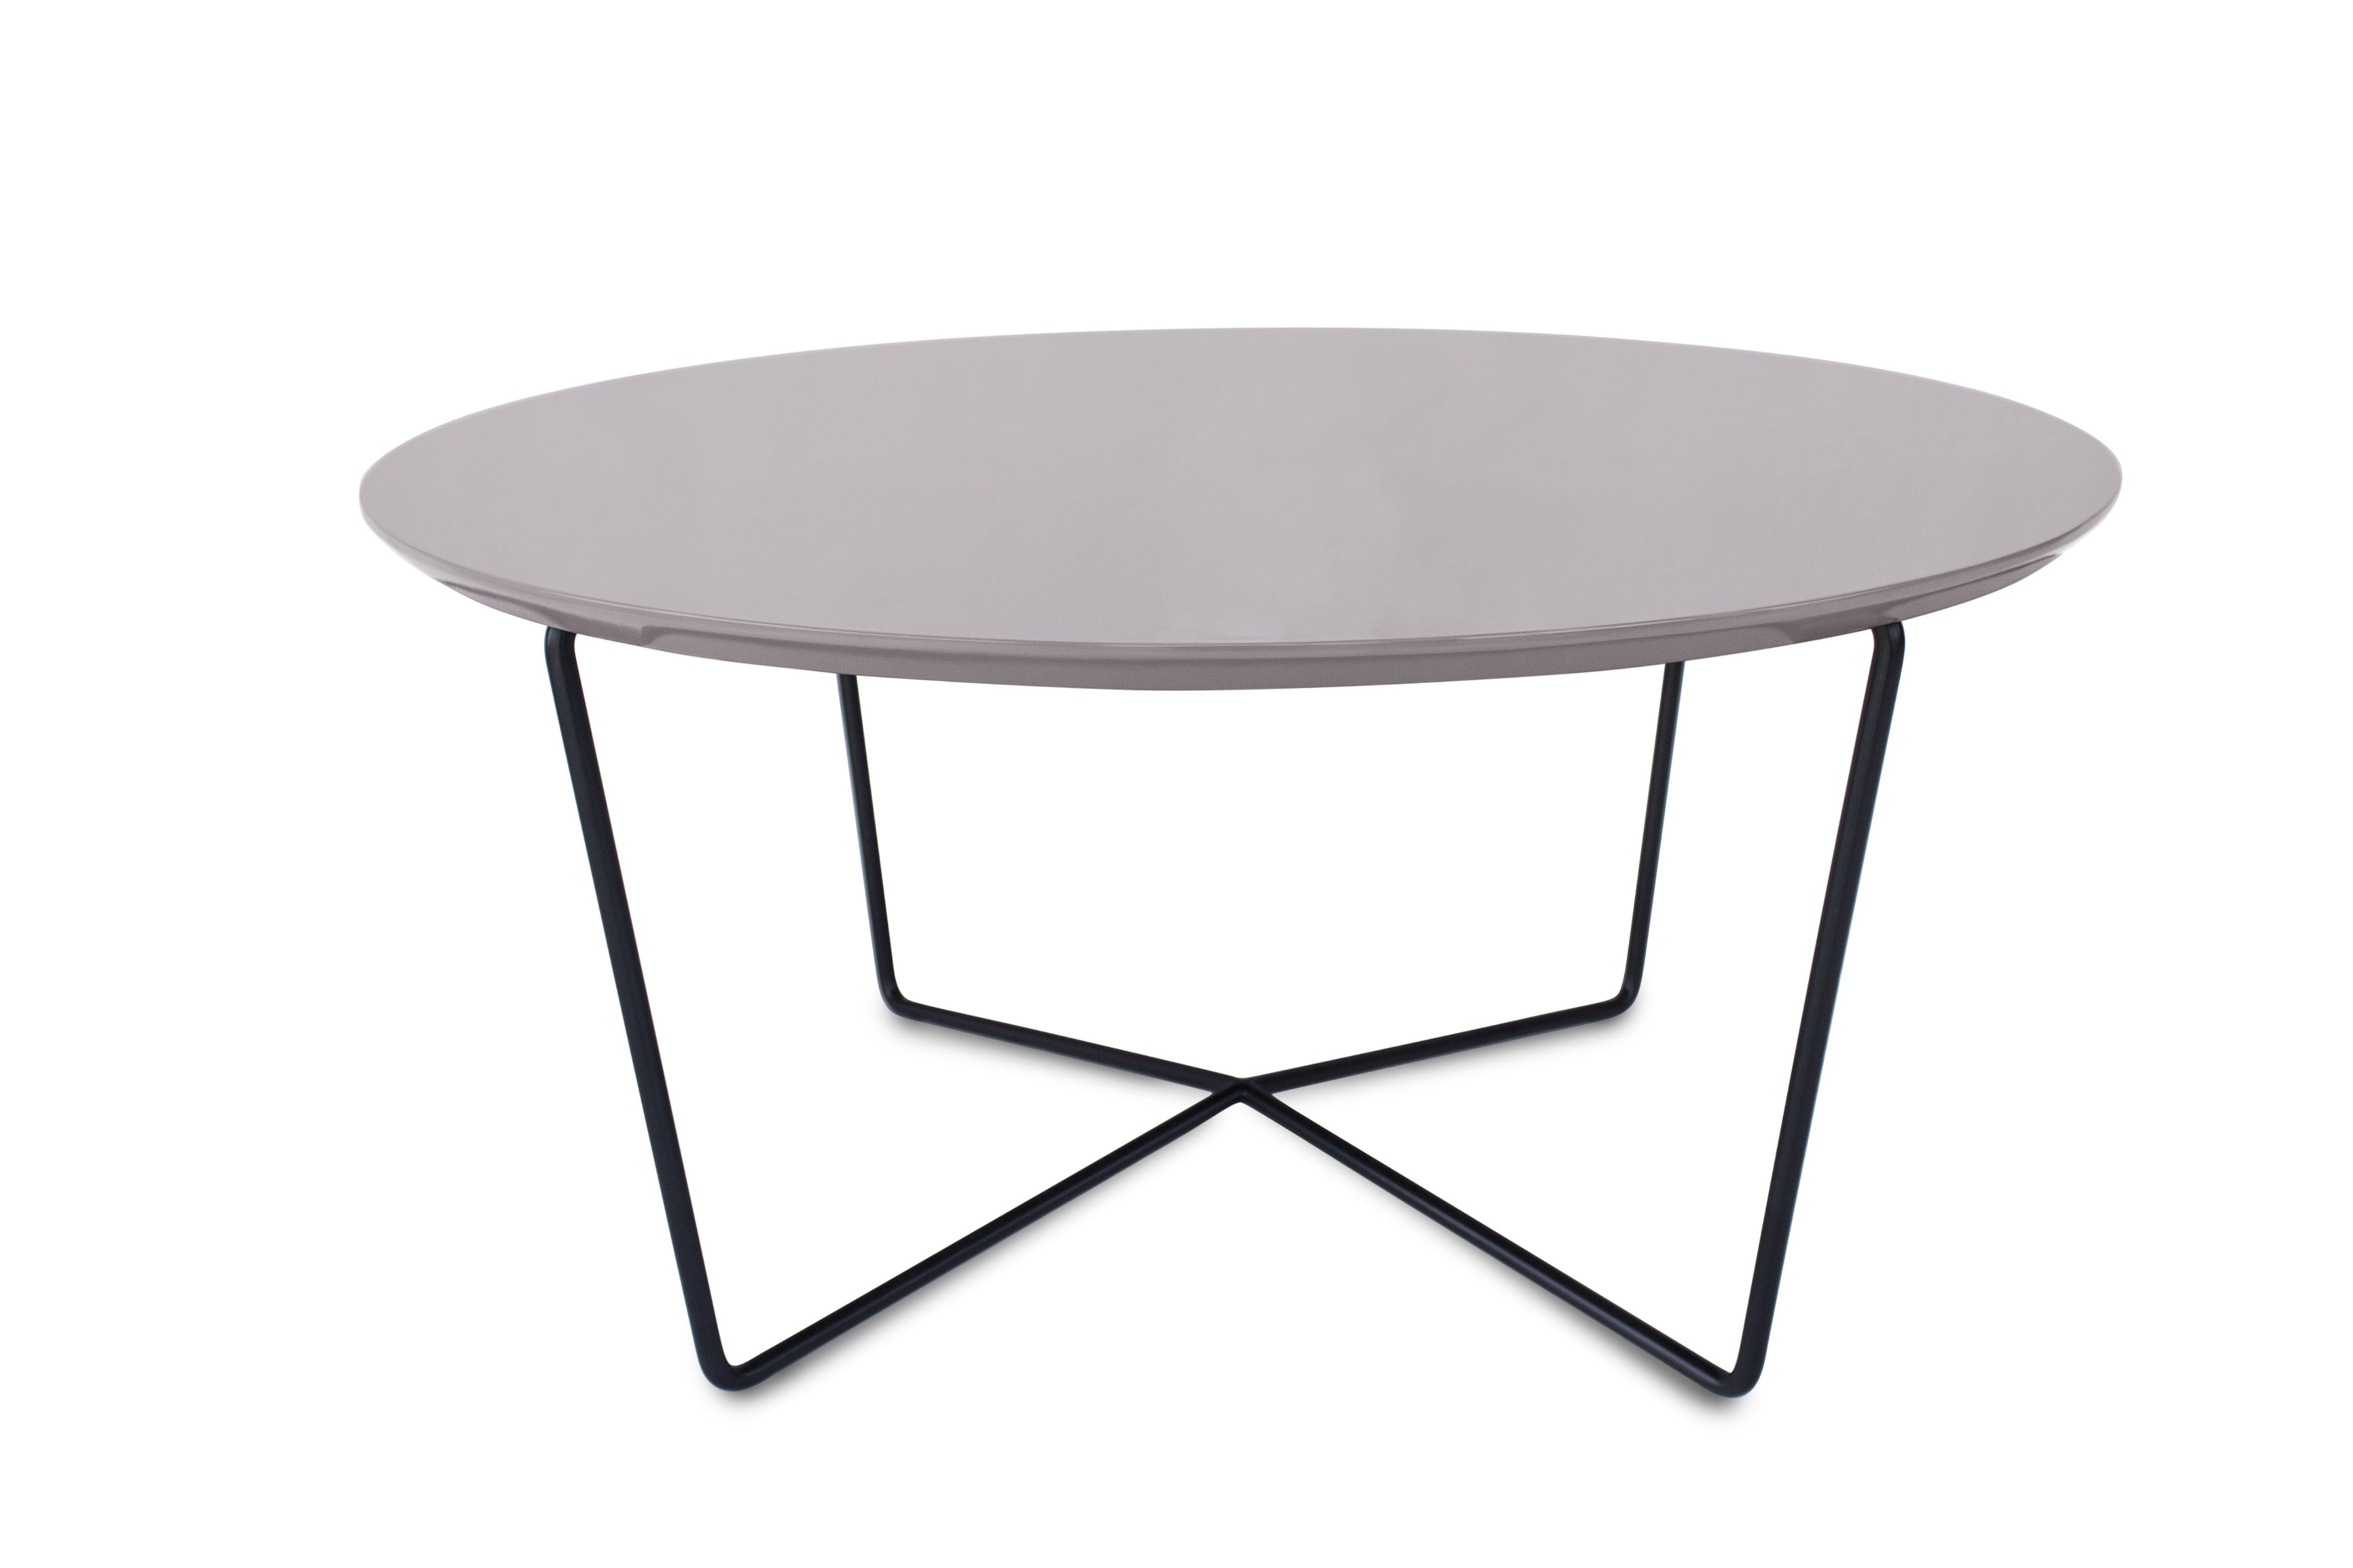 Gemma Mdf Coffee Table Gemma Collection By Altinox Minimal Design Design Majo Tumini